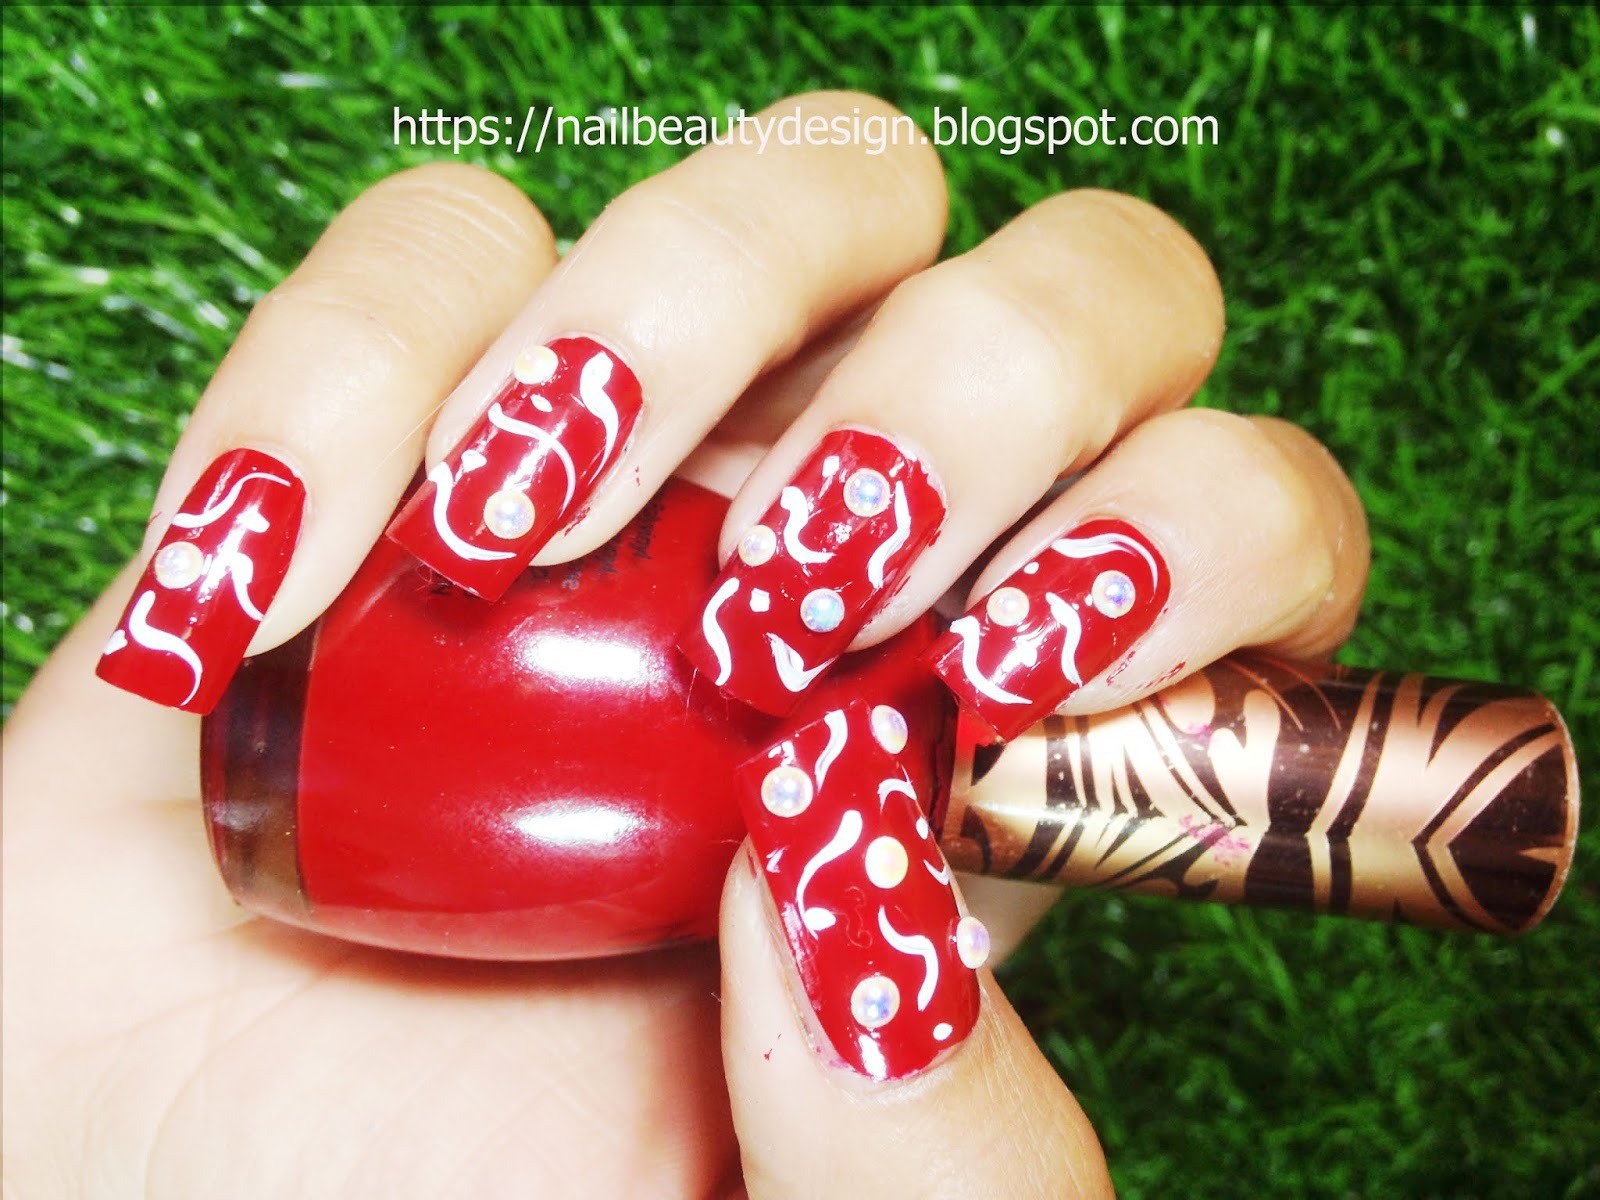 Simple Beautiful Nails Art Designs You Can Try At Home 3 Nail